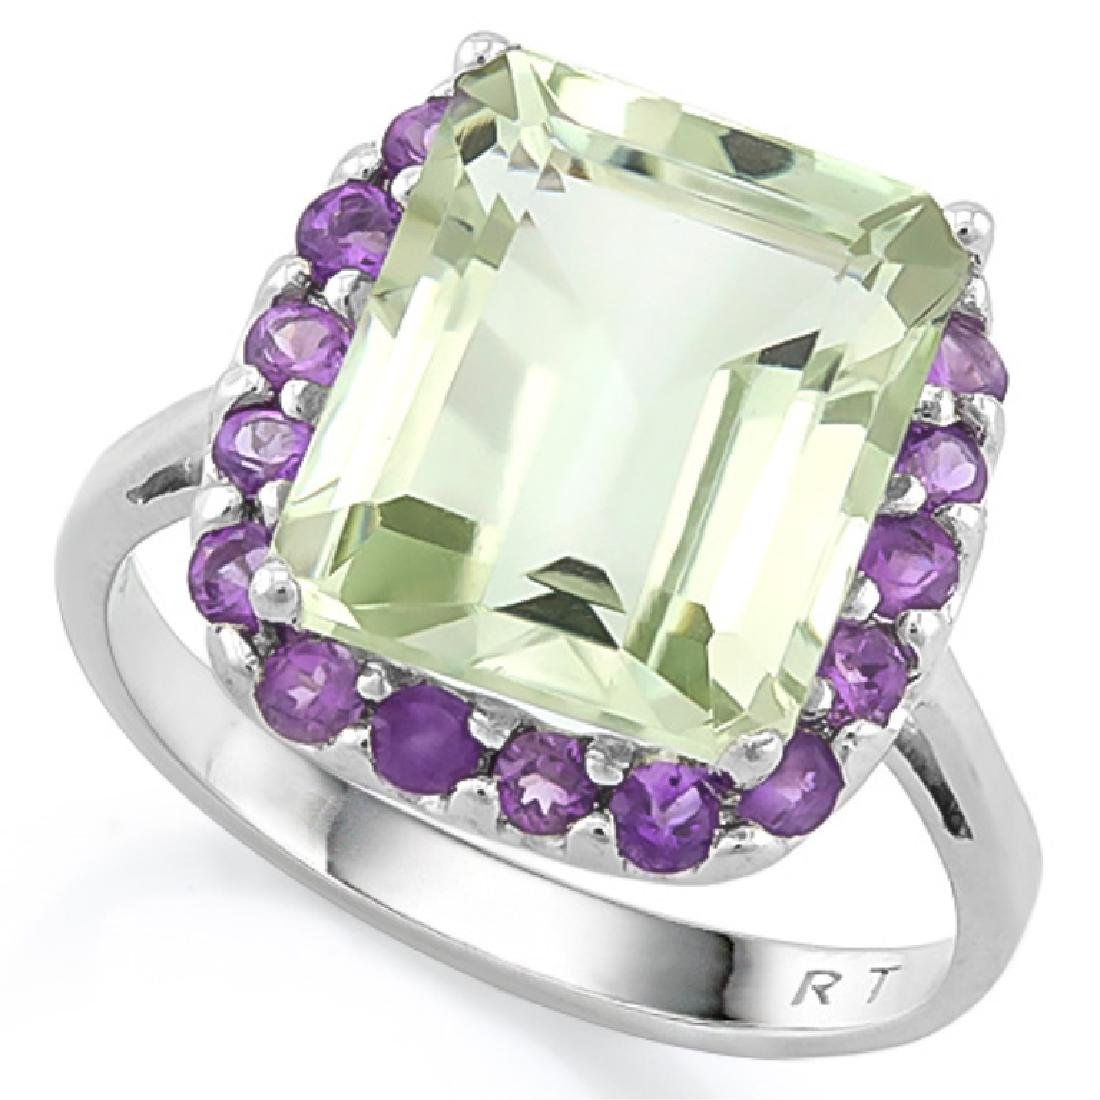 HUGE LAVENDAR AND GREEN AMETHYST 6CT STERLING RING